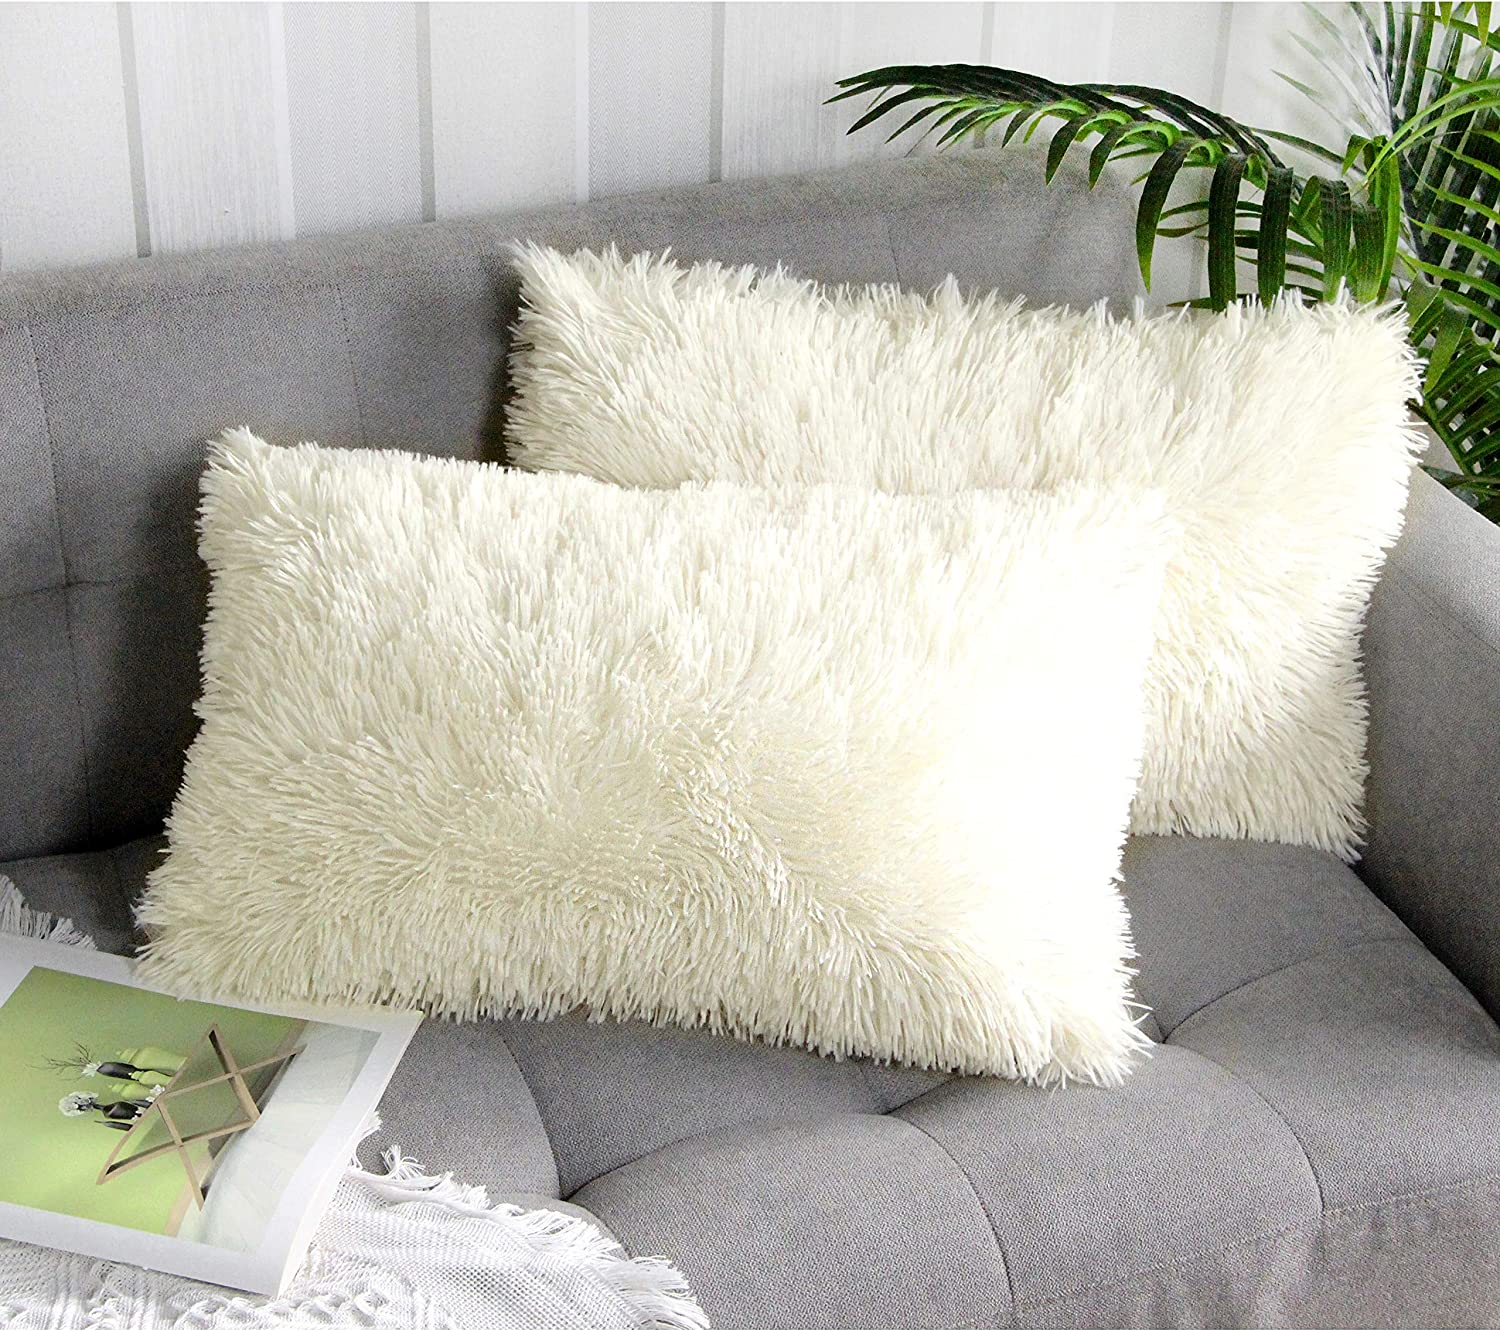 White 30x50 Cm 12 20 Uhomy Single Pack Home Decorative Super Soft Luxury Series Plush Faux Fur Throw Pillow Cover Cushion Case For Sofa Bed Decorative Pillows Inserts Covers Kolenik Throw Pillow